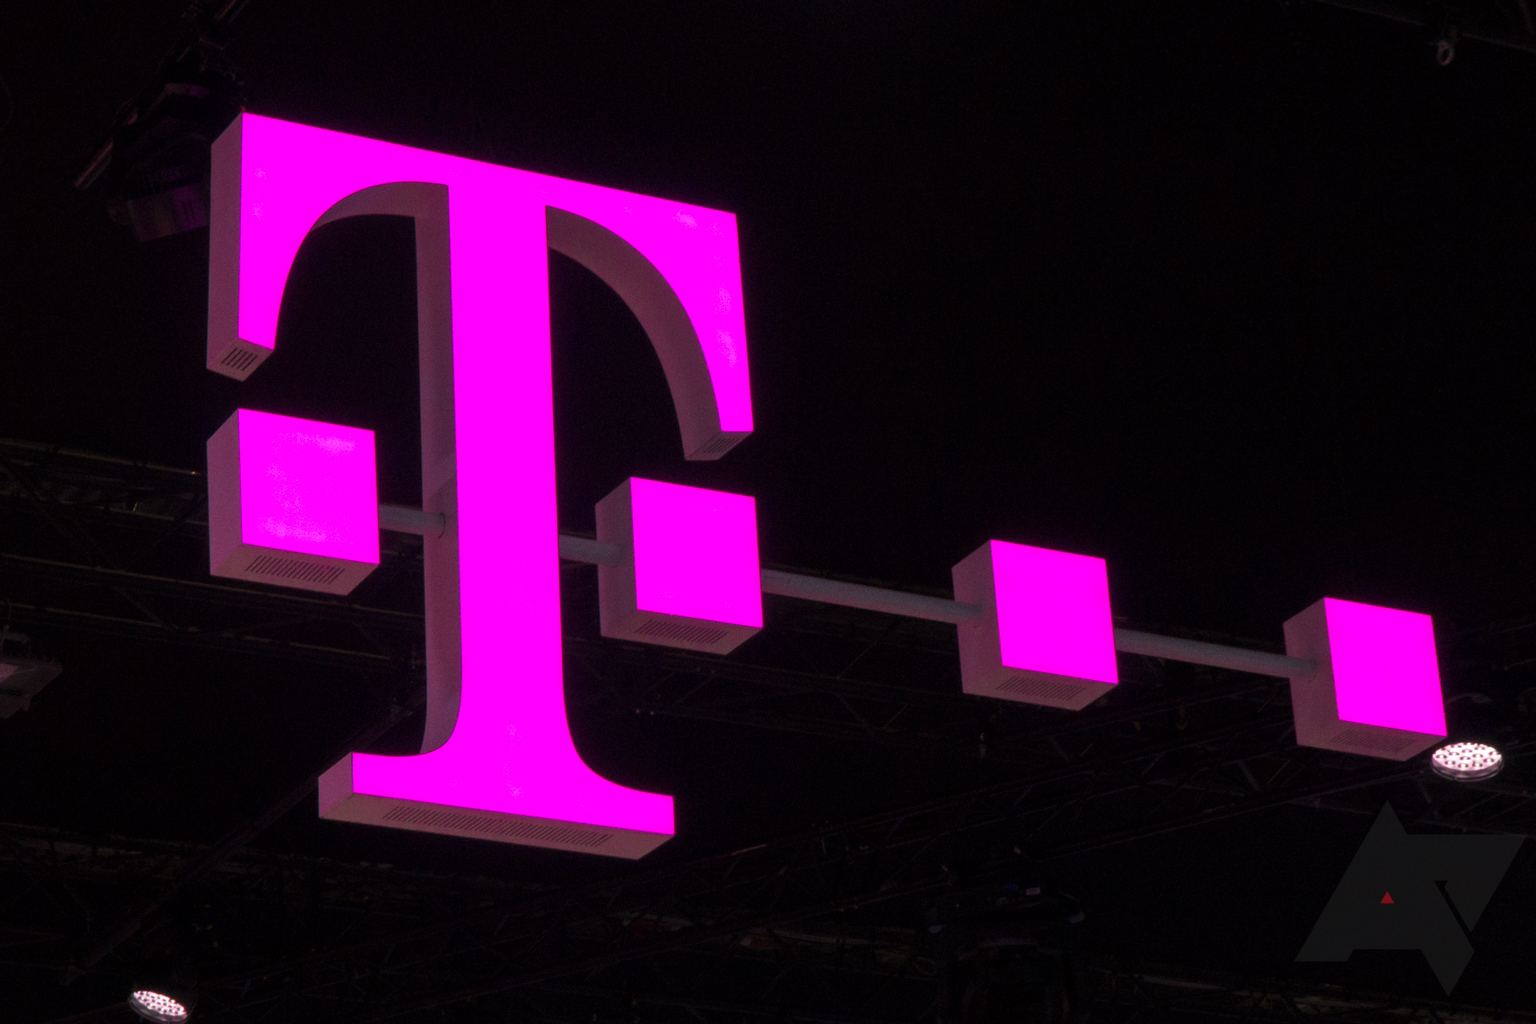 T-Mobile discontinues service for these phones, but offers free alternatives